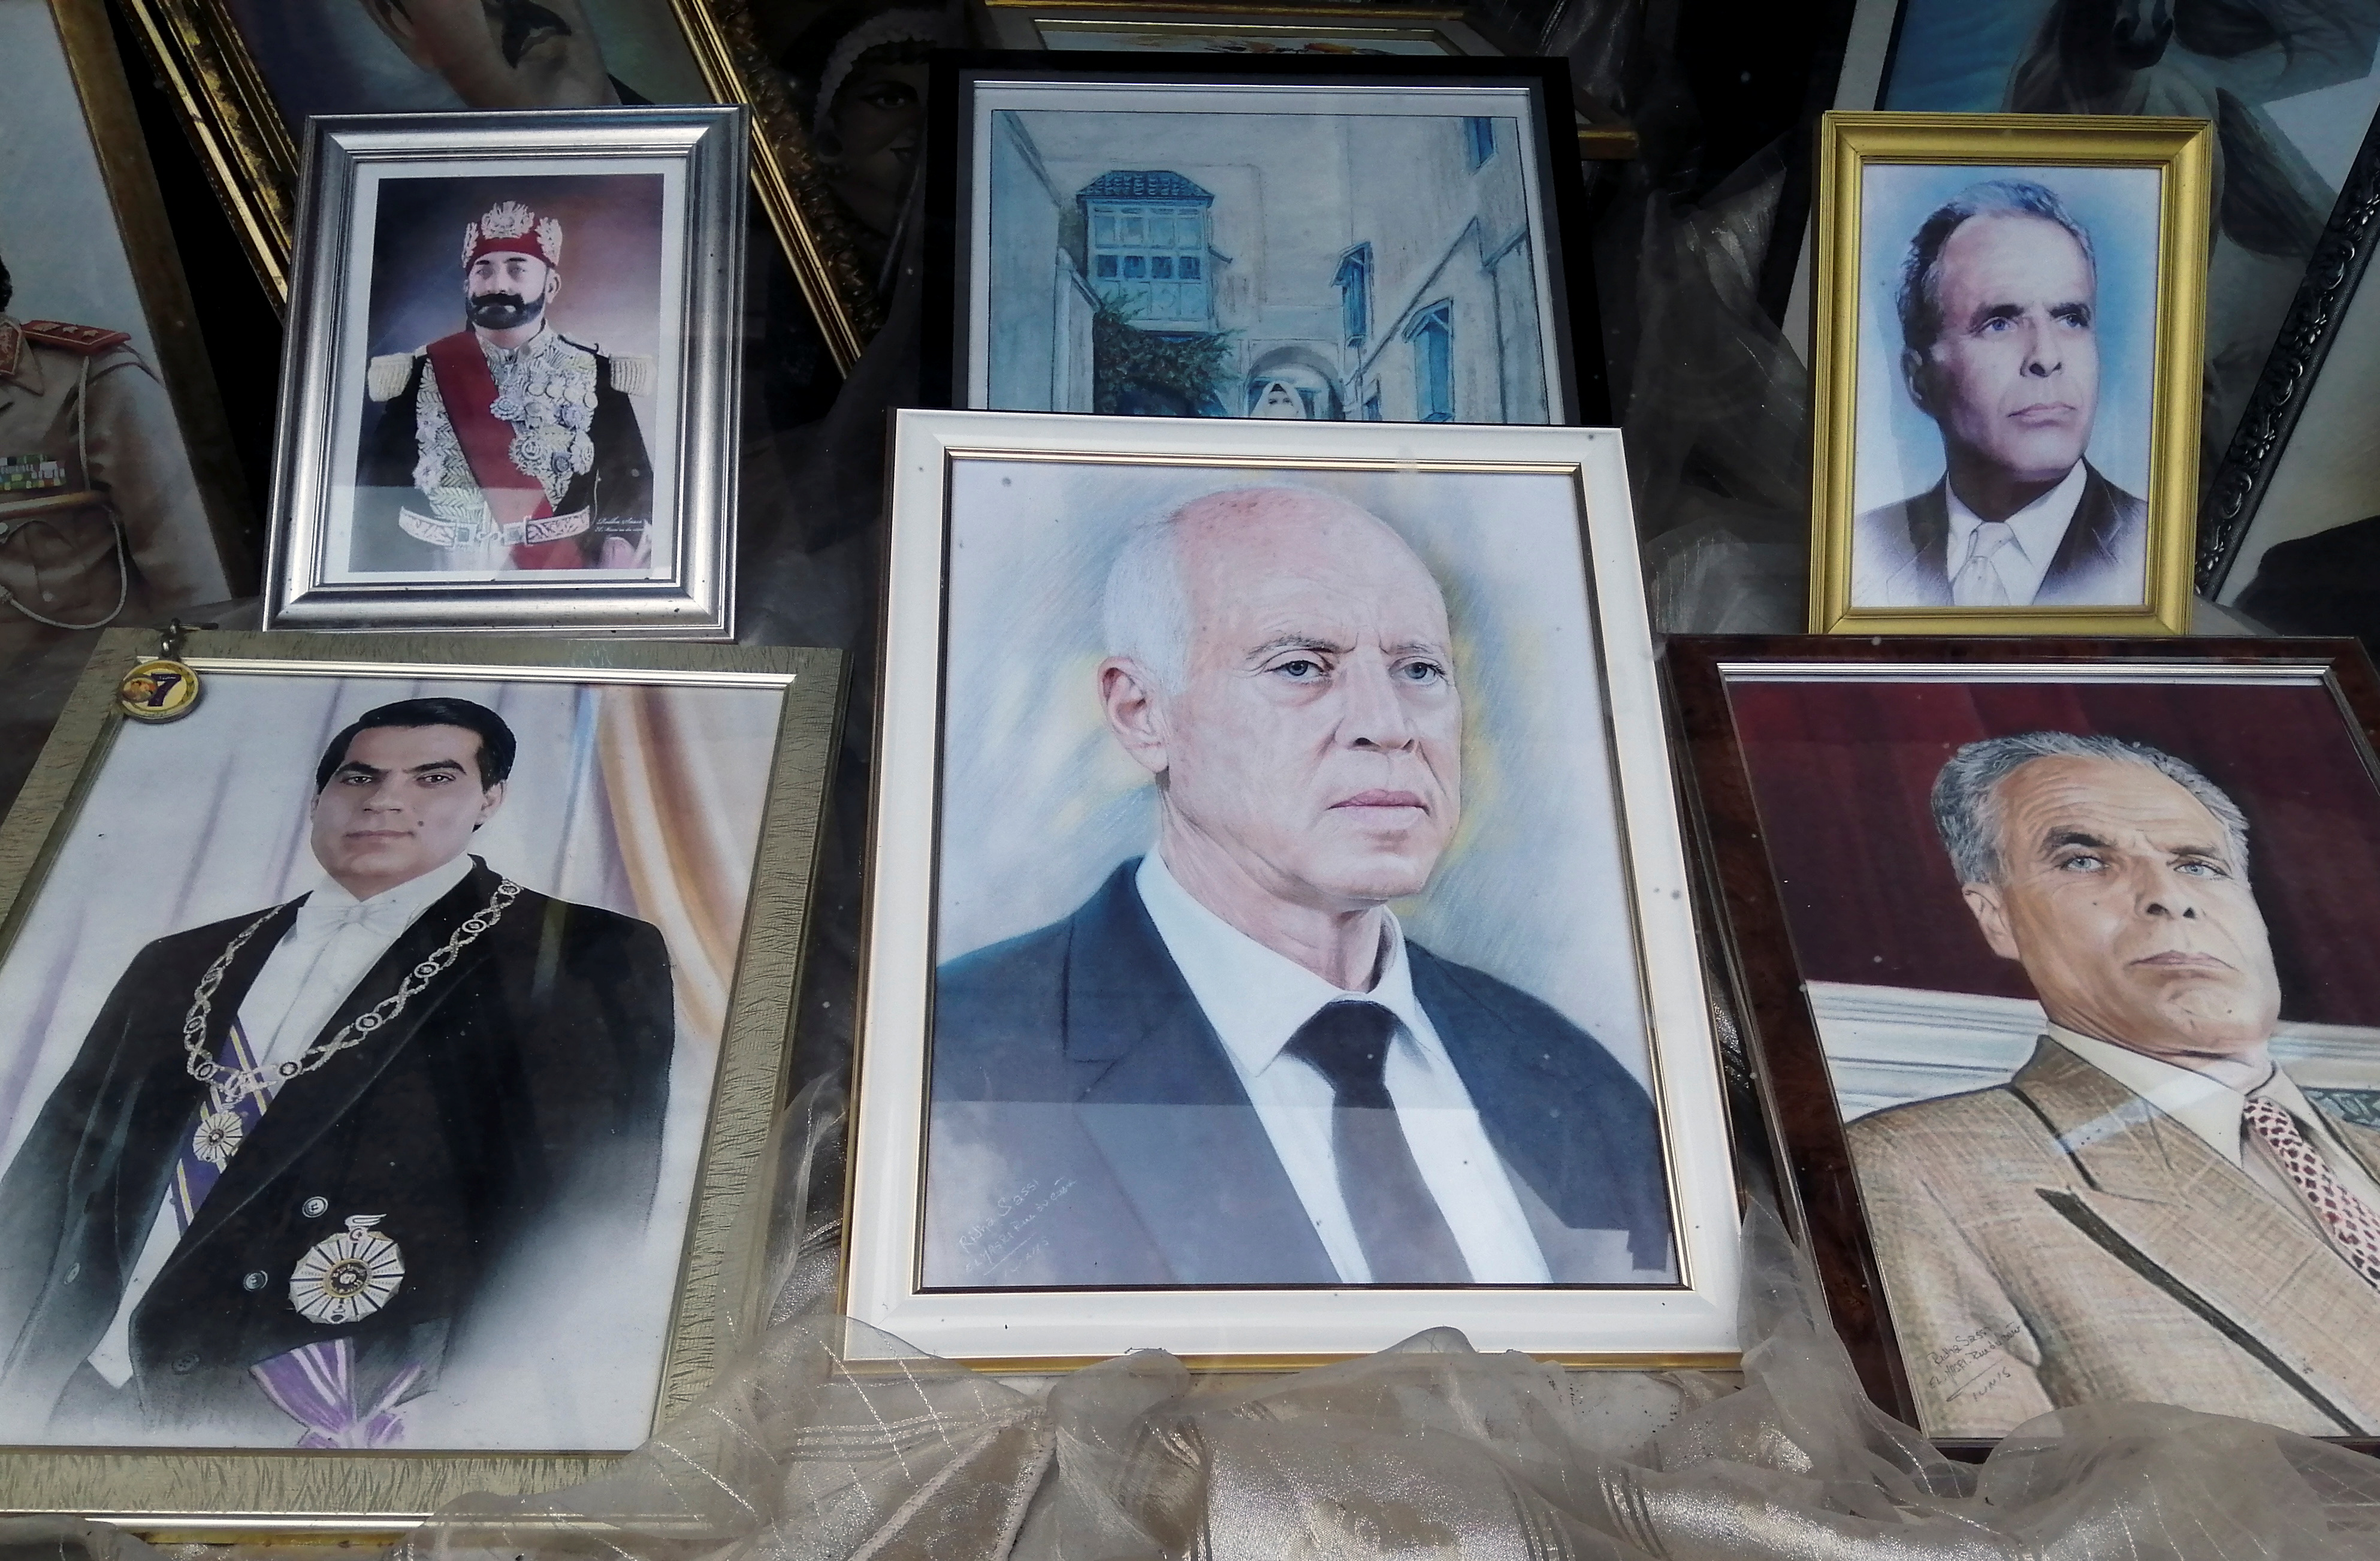 A portrait of Tunisian President Kais Saied and late President Zine El Abidine Ben Ali are displayed inside a photography shop in Tunis, Tunisia September 23, 2021. REUTERS/Jihed Abidellaoui